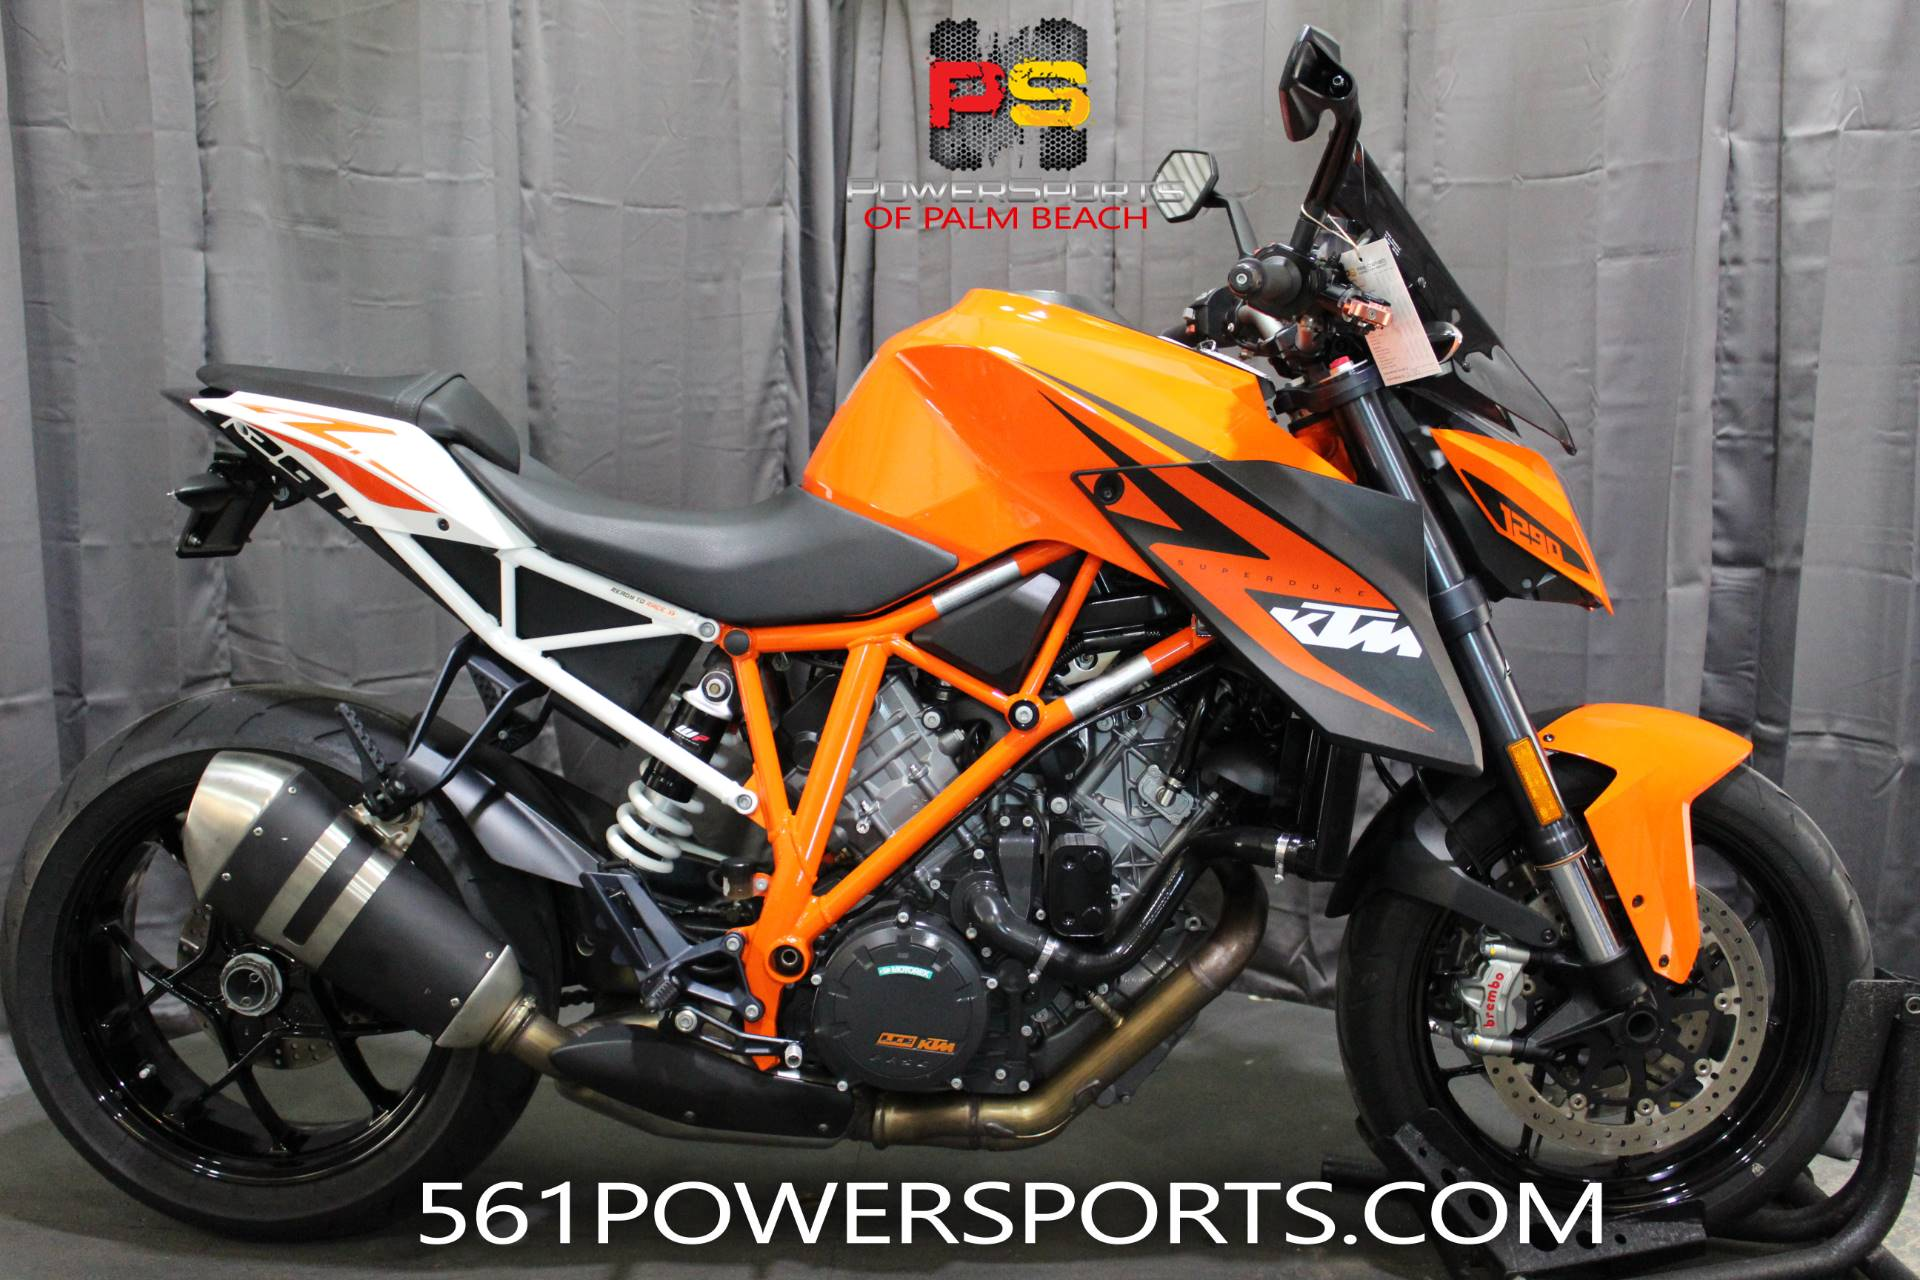 2016 KTM 1290 Super Duke R in Lake Park, Florida - Photo 1